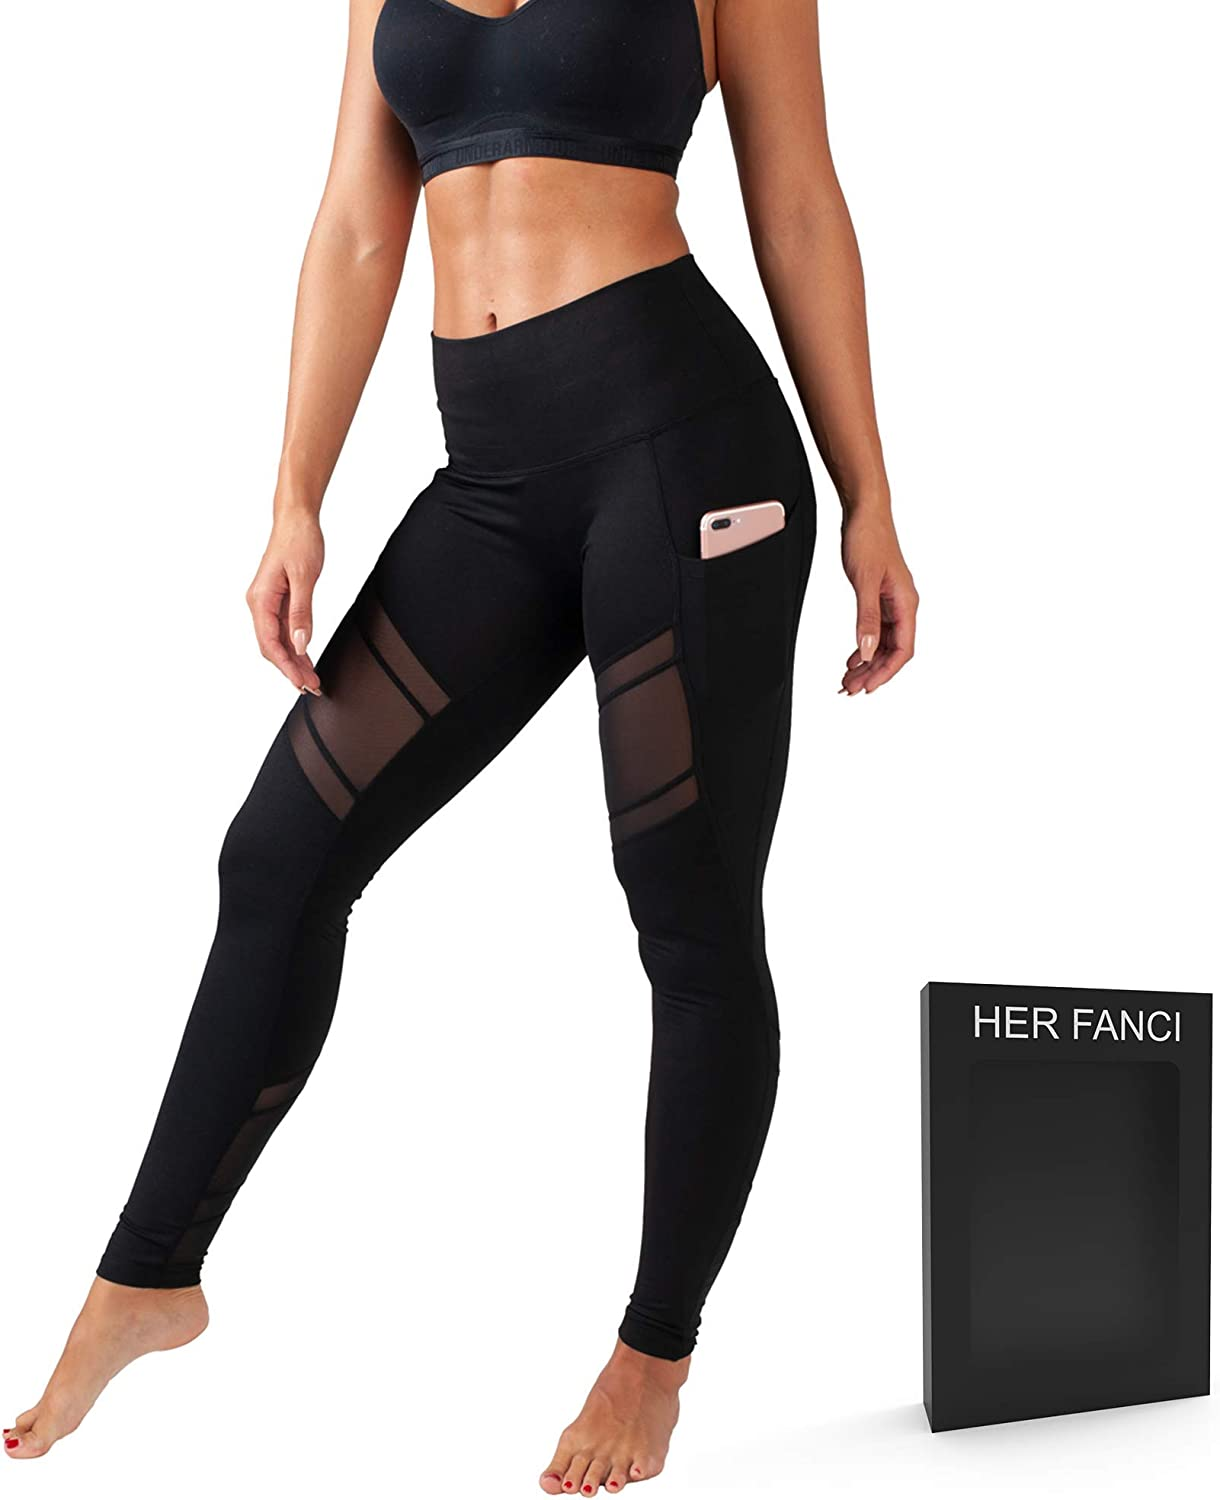 HerFanci Yoga Pants for Women with Pockets Black High Waisted Athletic Workout Leggings